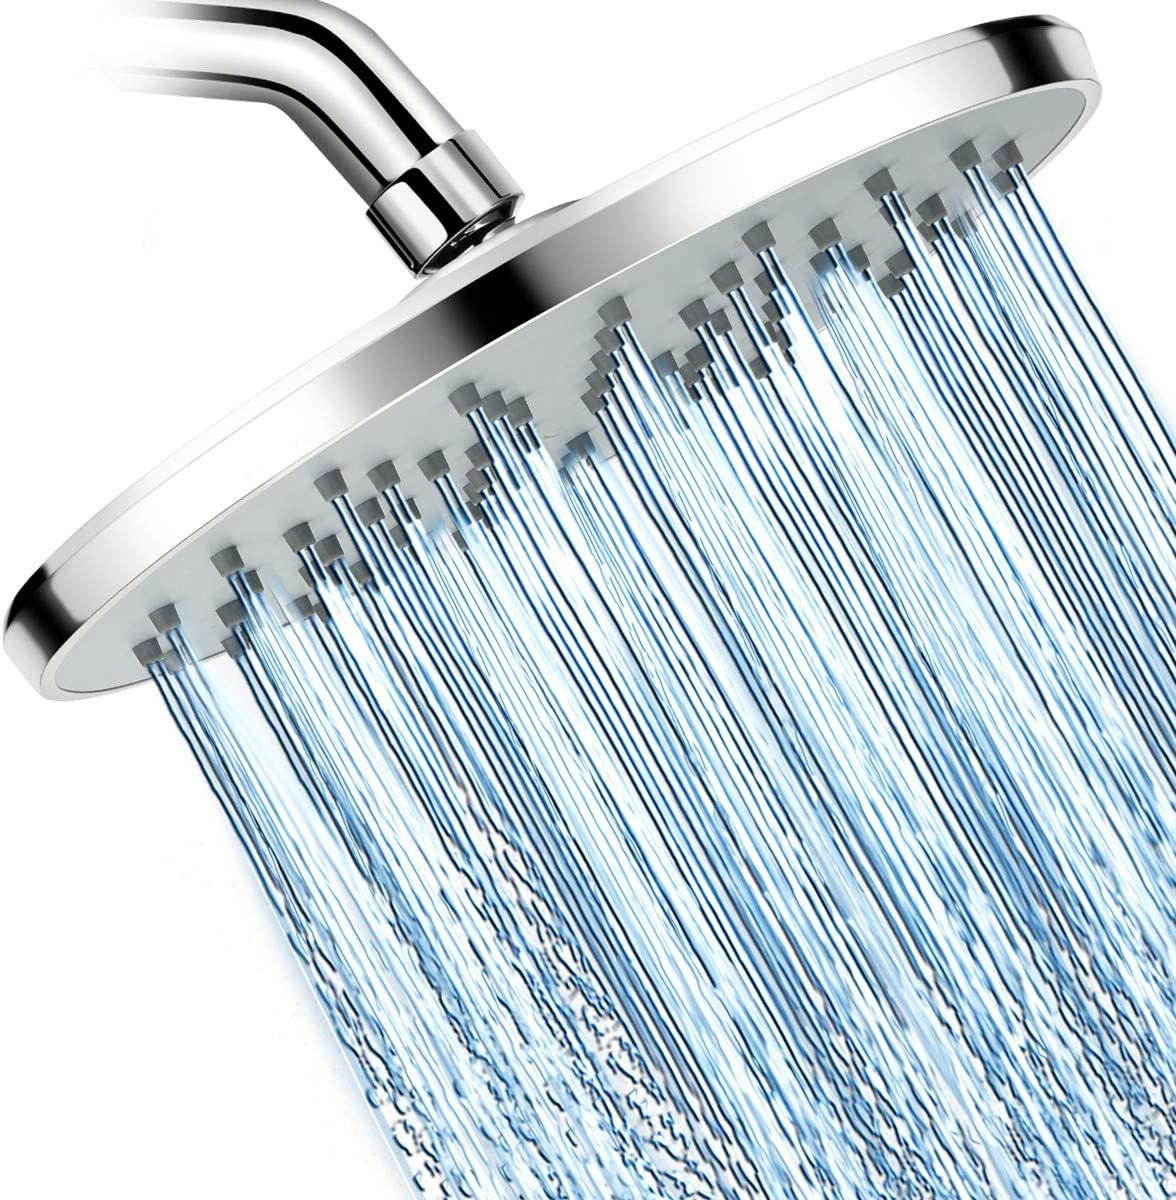 Warmspray Rainfall Shower Head High Pressure With 9 Inch Large Coverage Rain Shower Heads Spray Relaxation And Adjustable Brass Swivel Ball Joint With Filter Amazon Com